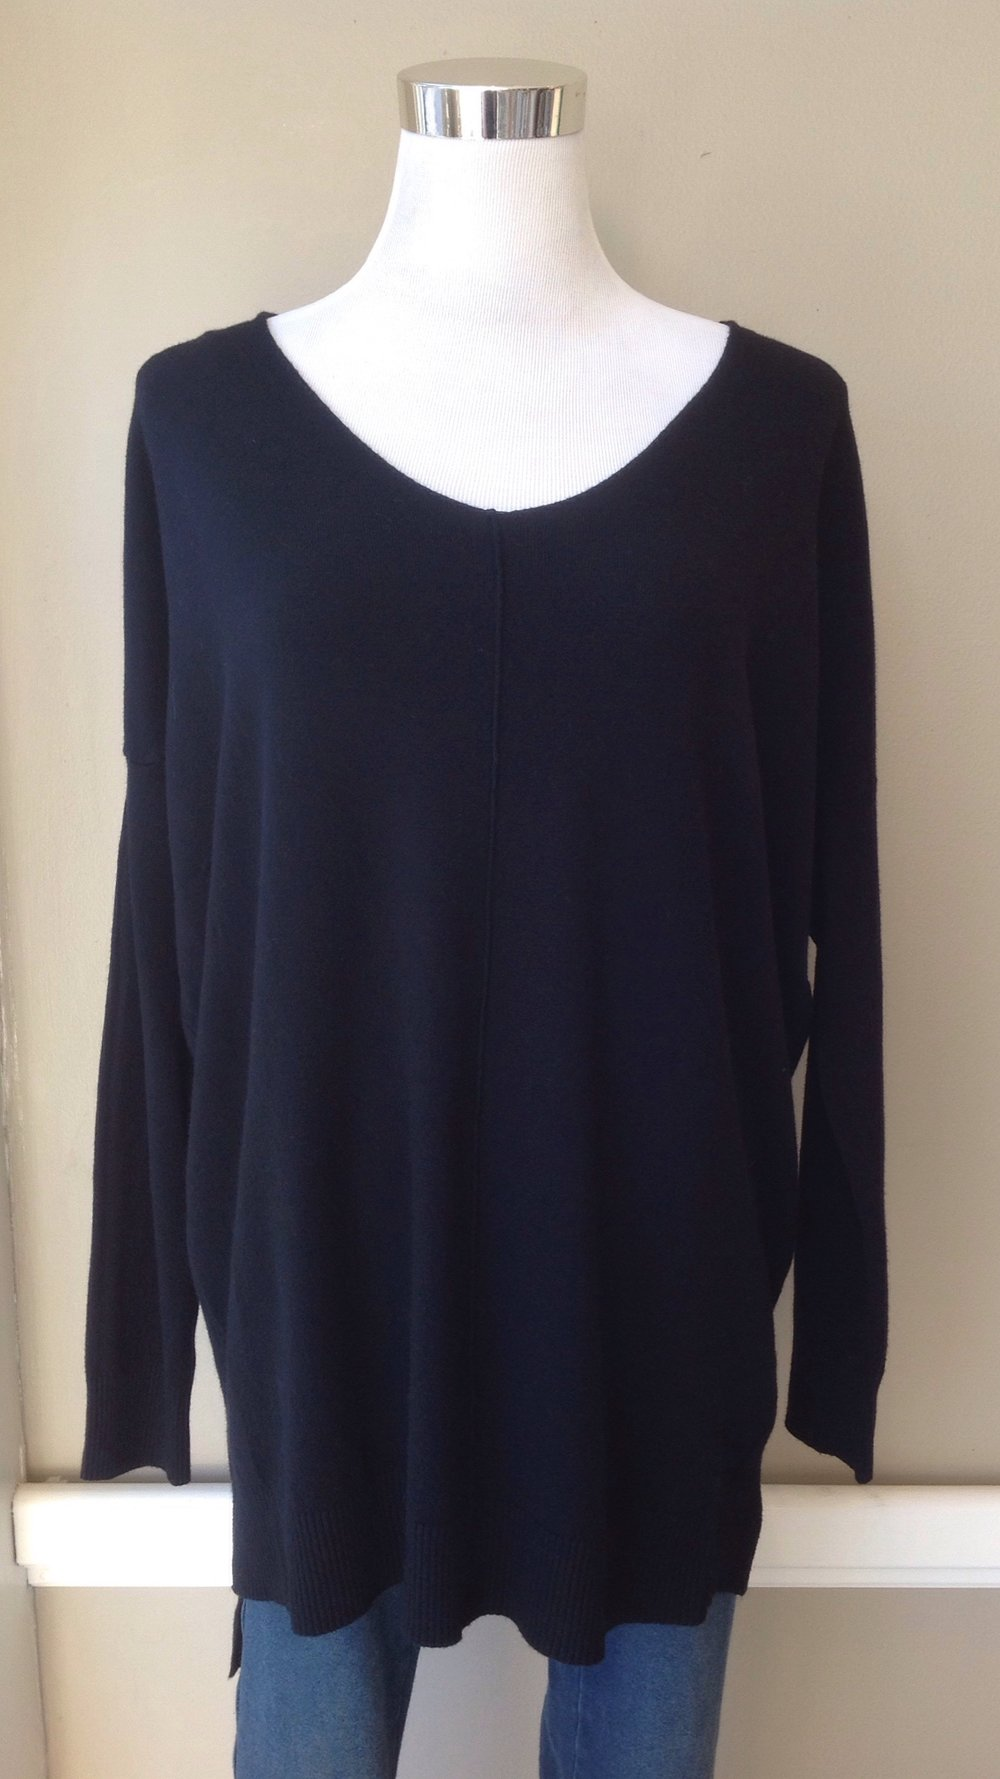 Ultra soft v-neck sweater with center seam and tiered hem in black, $40